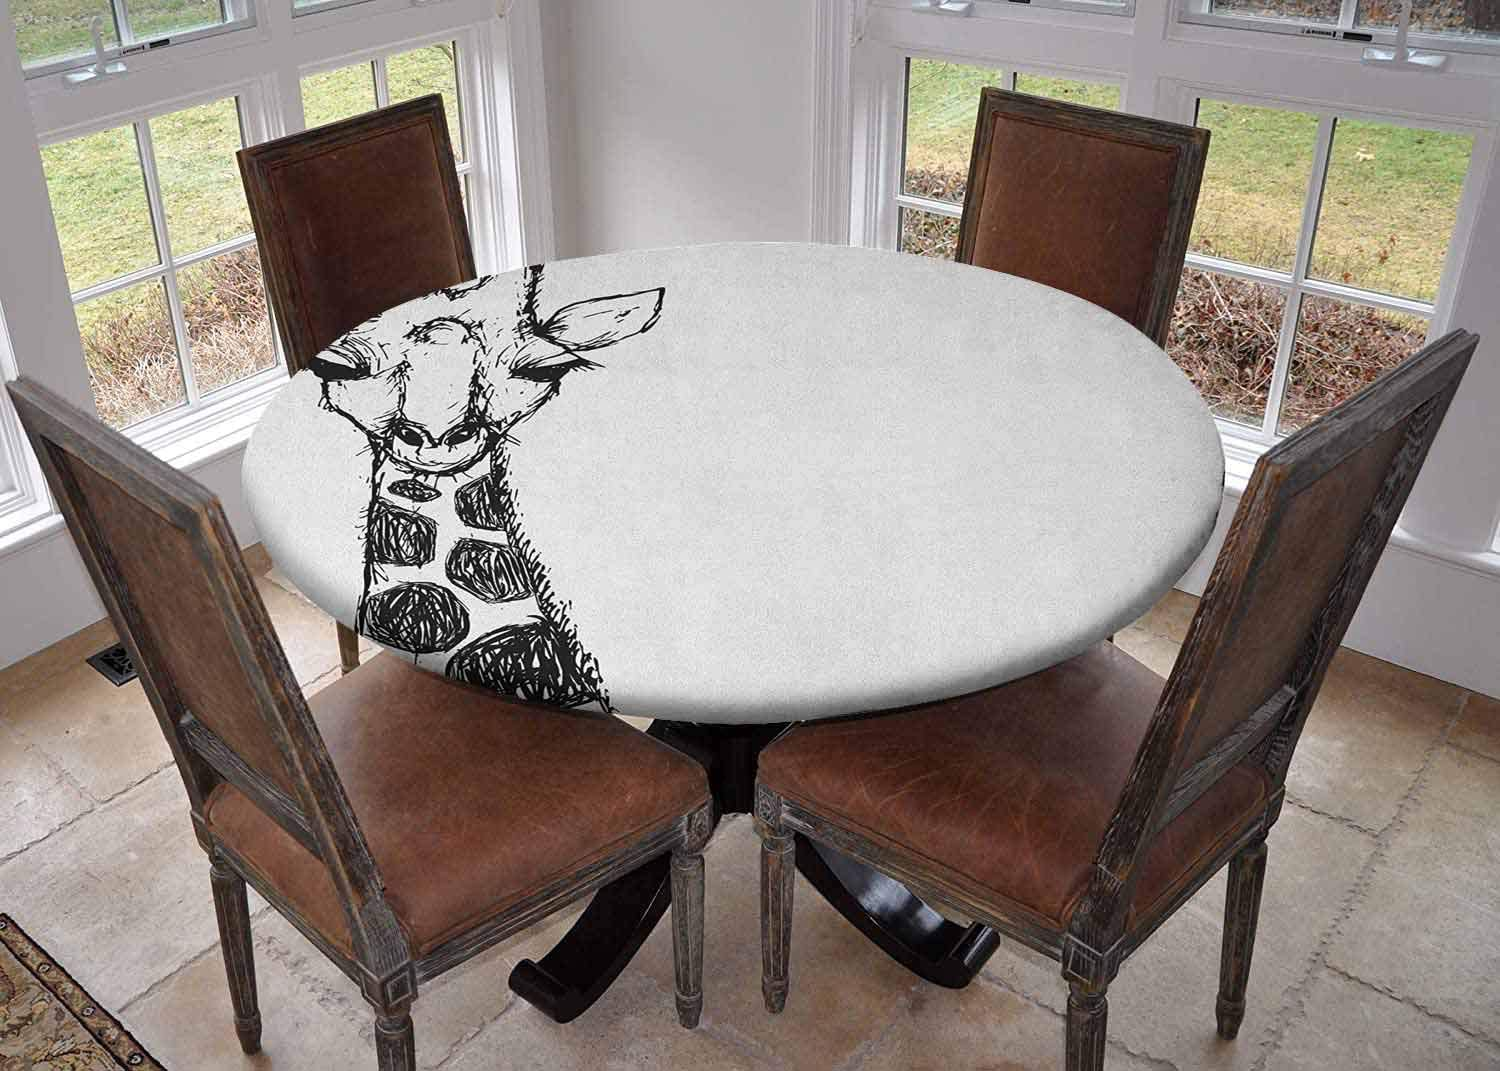 Round Tablecloth Kitchen Decoration Table Cover With Elastic Edges Diameter 62 Cute Graphic Of Safari Giraffe Tall Neck Spots West Wild Character Grey White Dining Tablecloth Amazon Co Uk Kitchen Home